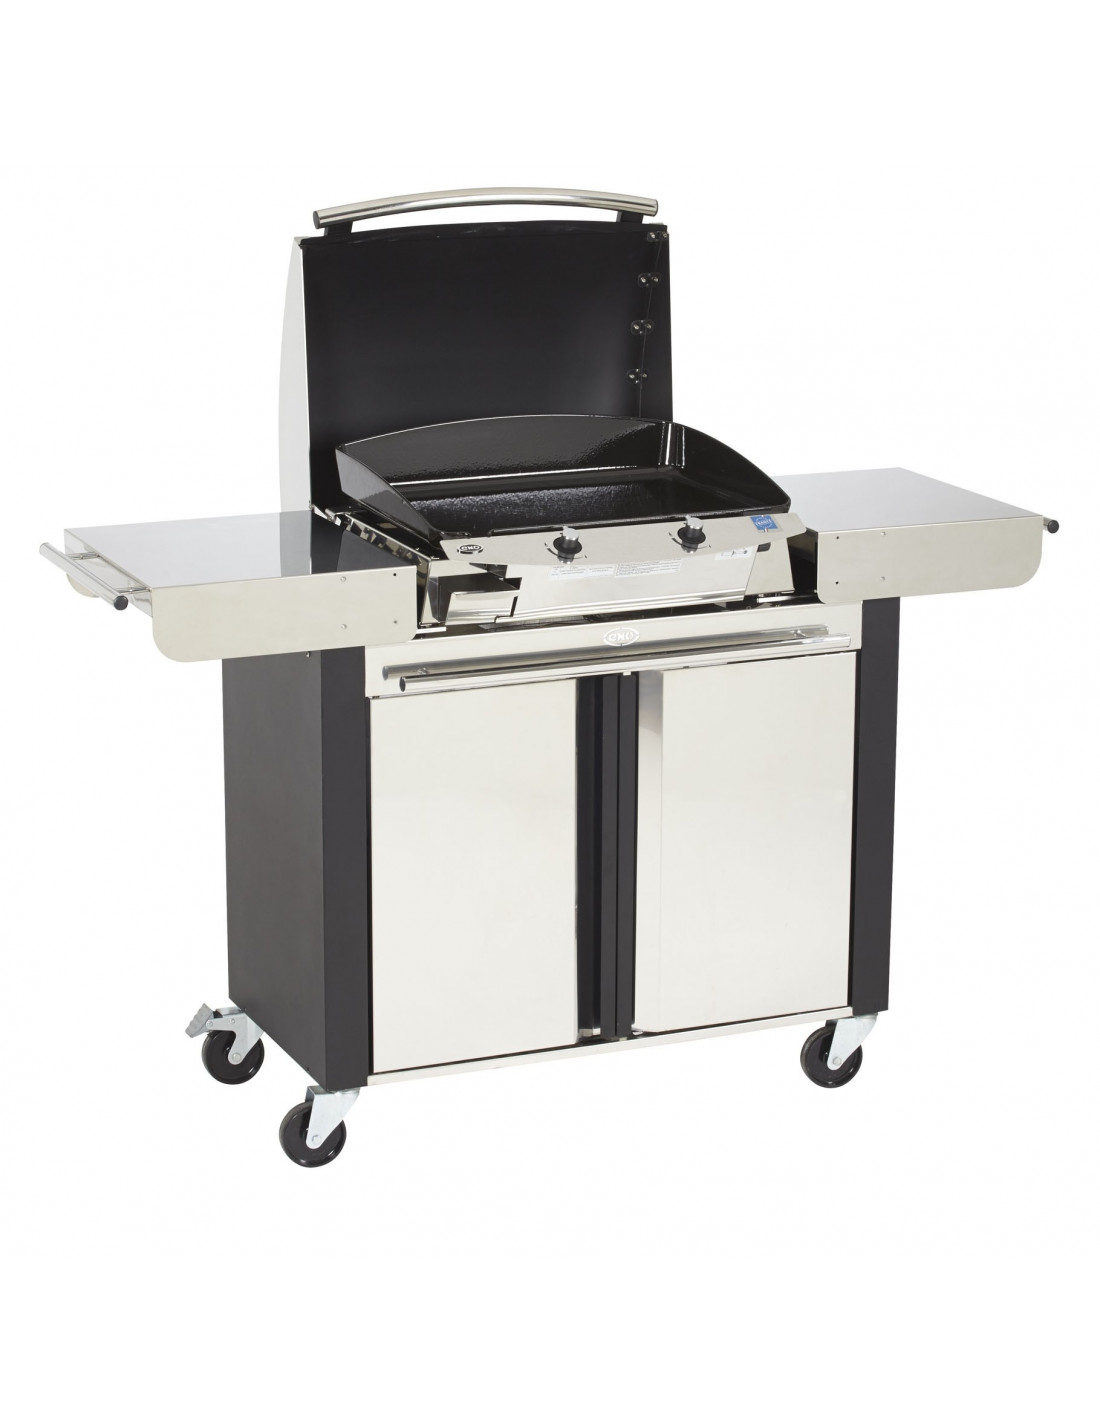 plancha soldes beautiful barbecue weber castorama avec barbecue weber castorama bon plan avec. Black Bedroom Furniture Sets. Home Design Ideas